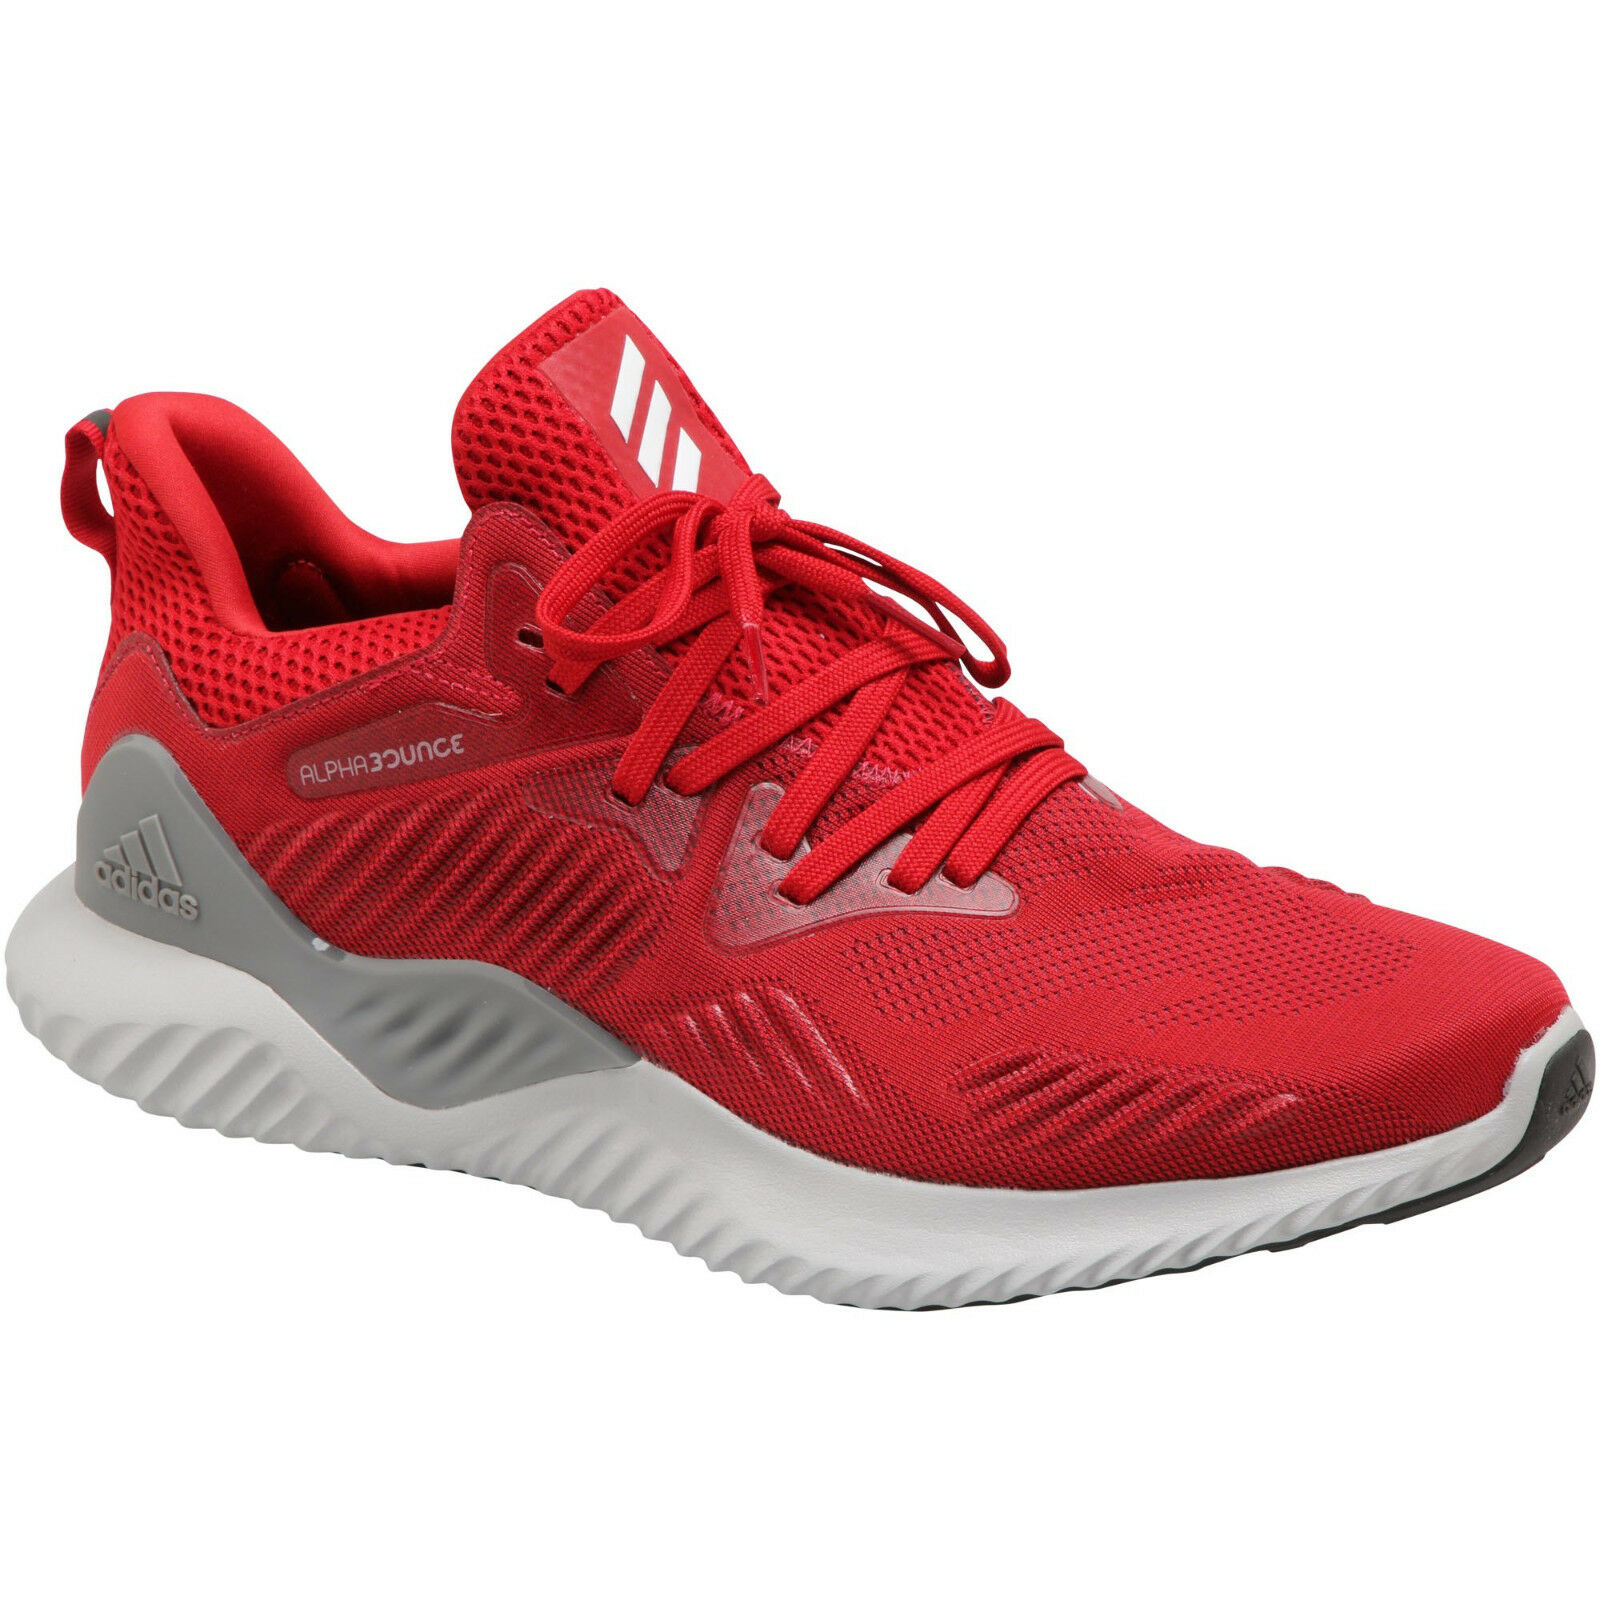 Adidas AlphaBounce Beyond M Knit Men's Running Training Athletic shoes Red